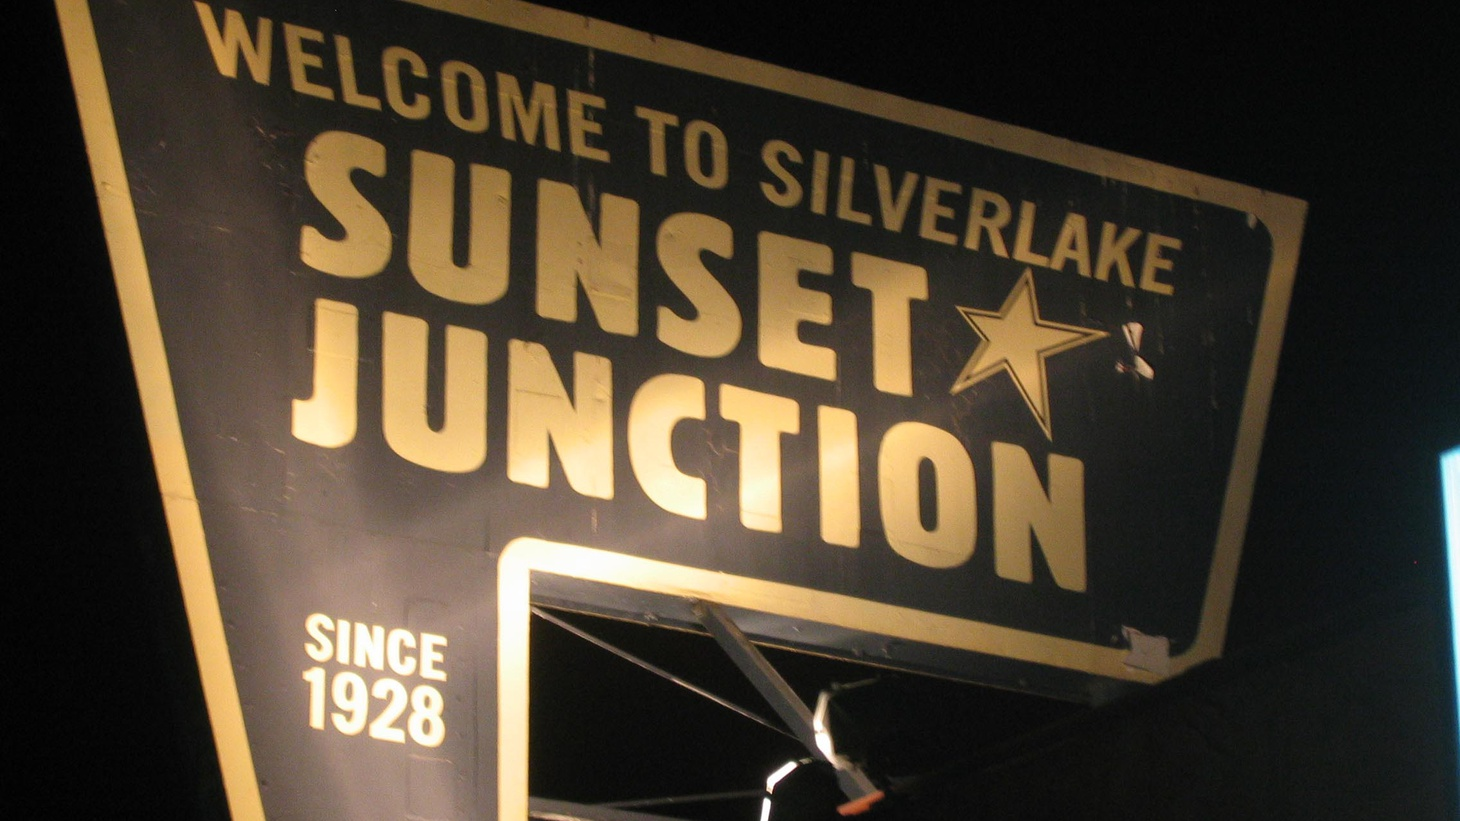 The latest dispute over greater density in Los Angeles is focused on Sunset Junction, where Sunset and Santa Monica Boulevards meet in Silver Lake. Some residents complain that a new apartment building will destroy a treasured neighborhood. It's a paradigm for conflicts all over LA.